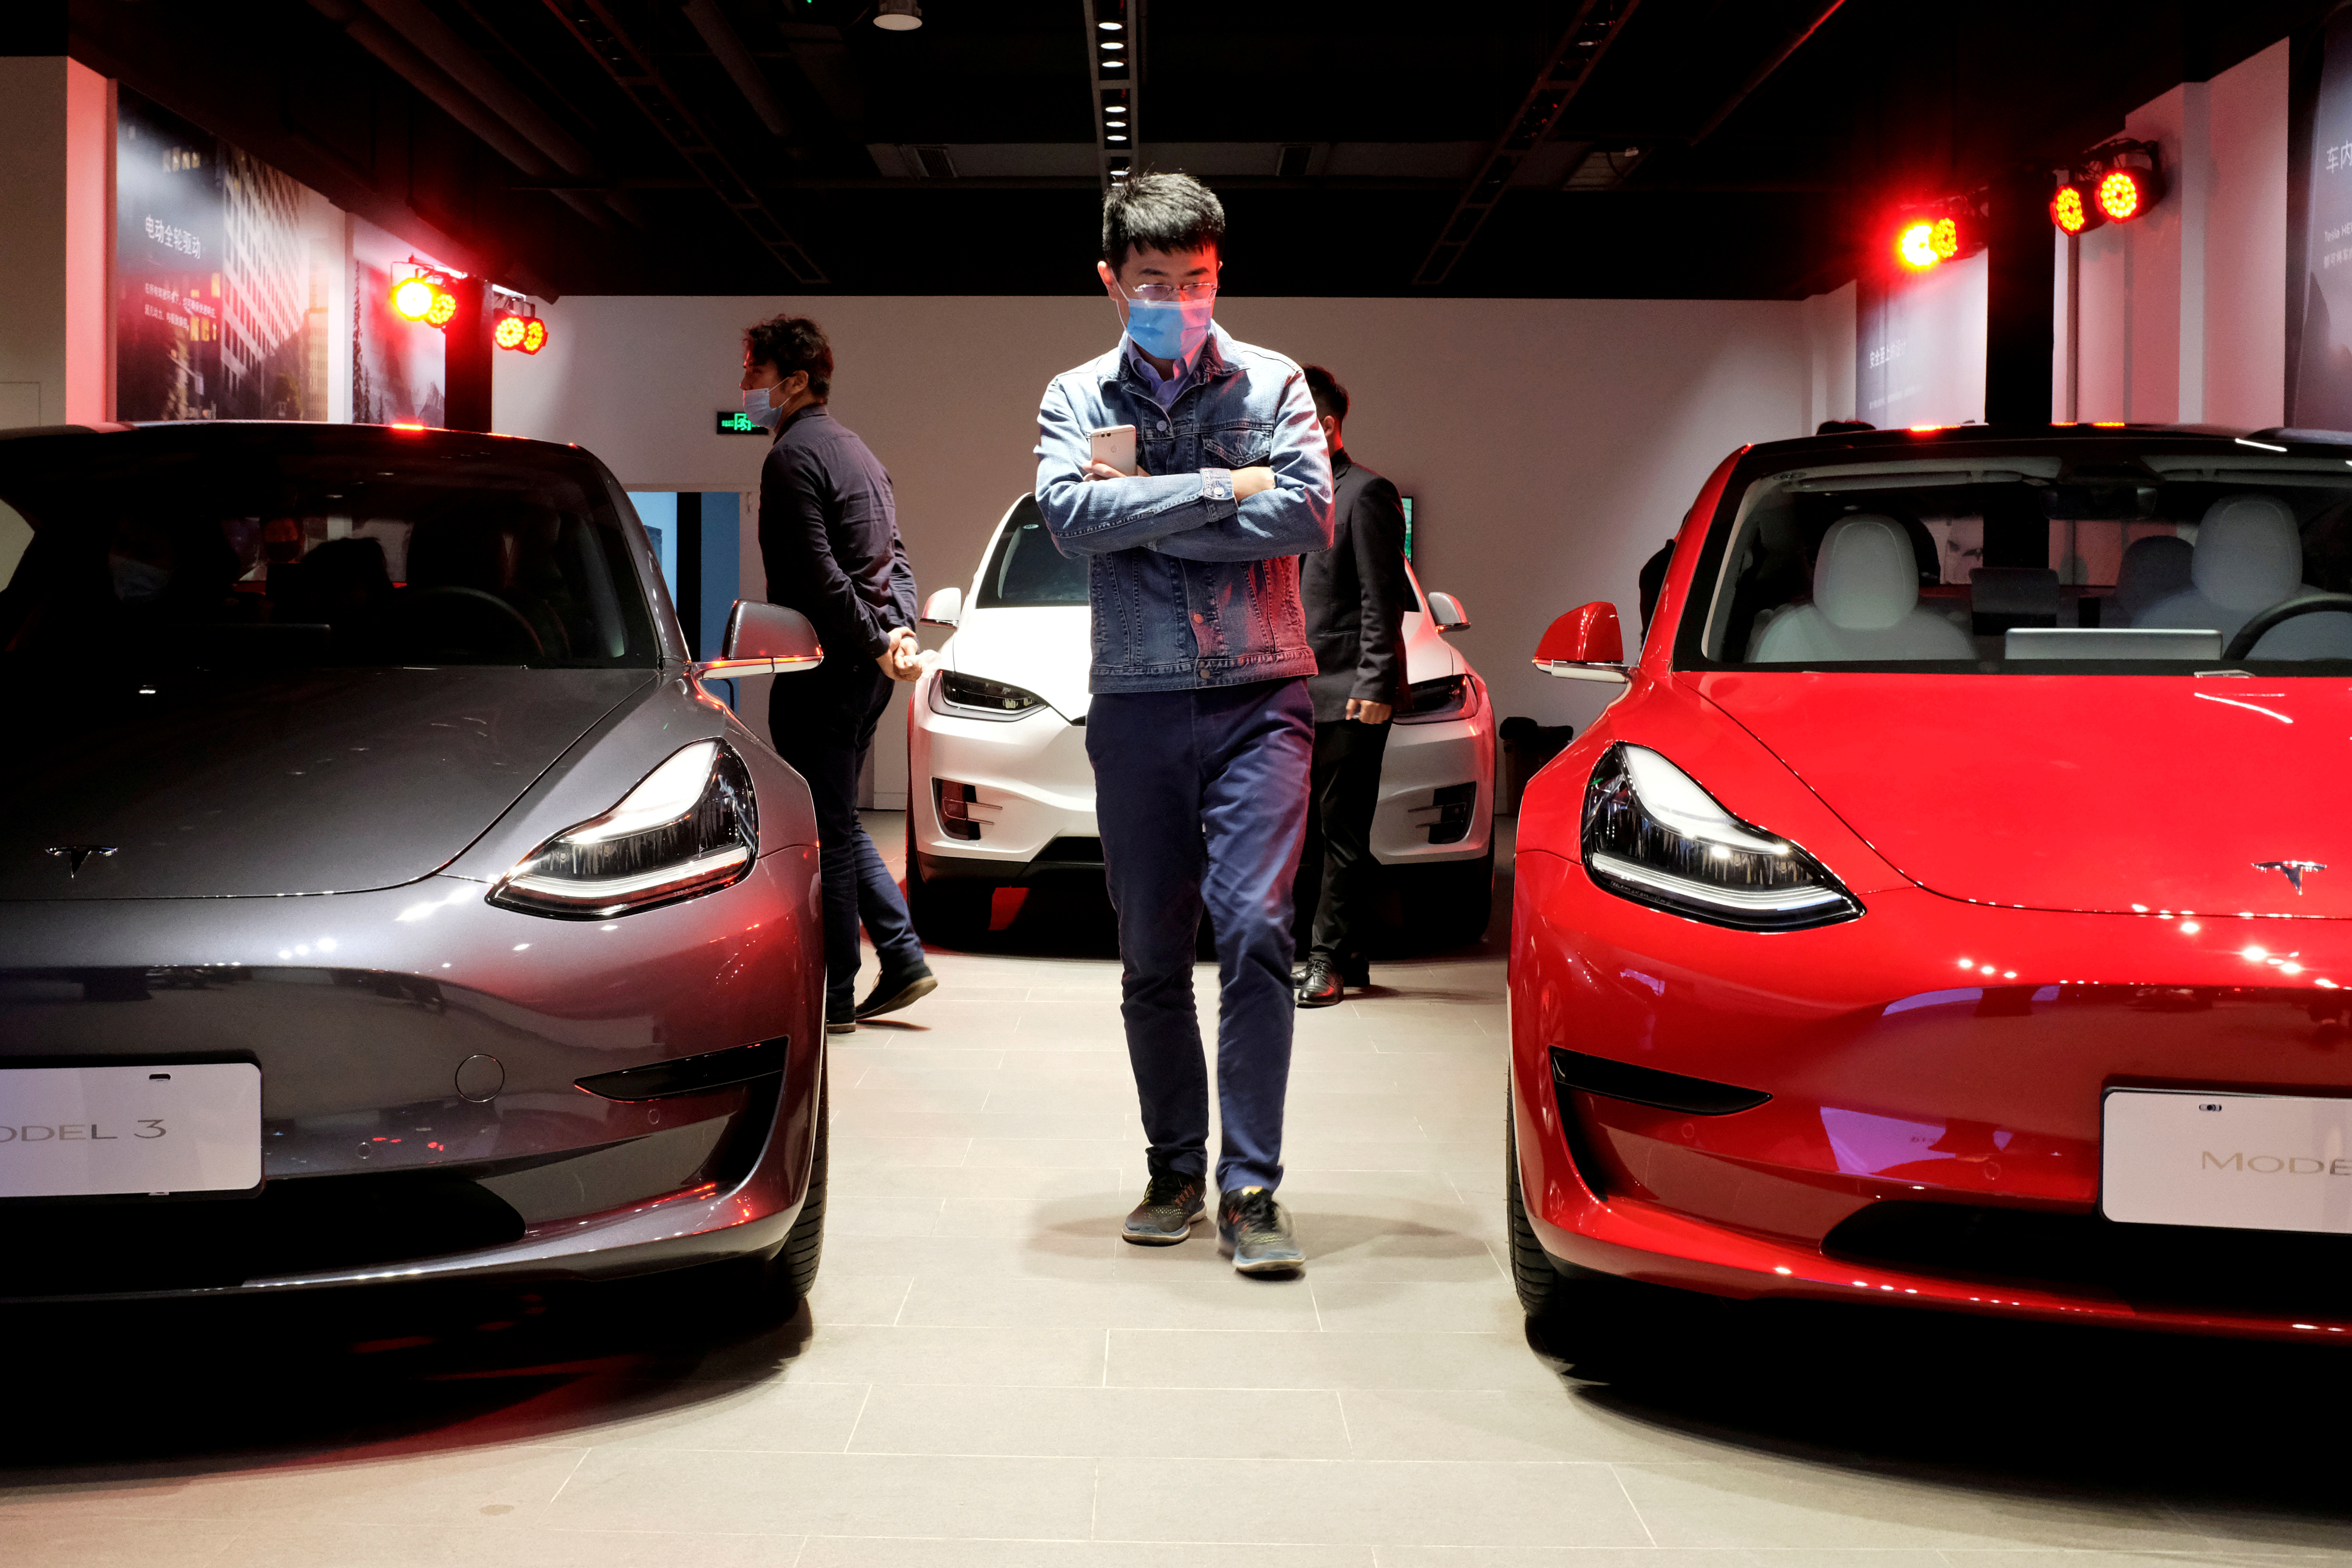 A man wearing a face mask following the coronavirus disease (COVID-19) outbreak walks by Tesla Model 3 sedans and Tesla Model X sport utility vehicle at a new Tesla showroom in Shanghai, China May 8, 2020. REUTERS/Yilei Sun/File Photo